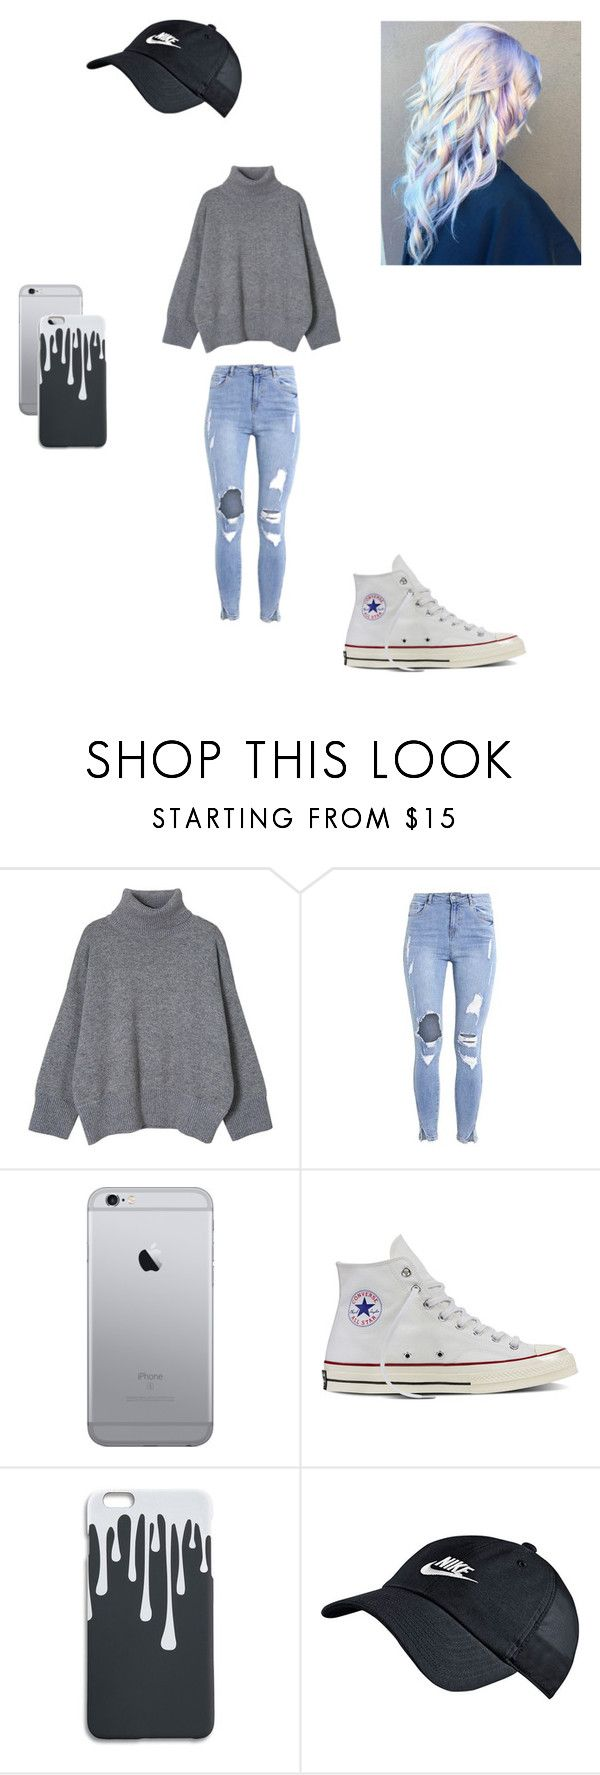 """#1"" by v-leroy on Polyvore featuring Mode, Converse, ASAP und NIKE"